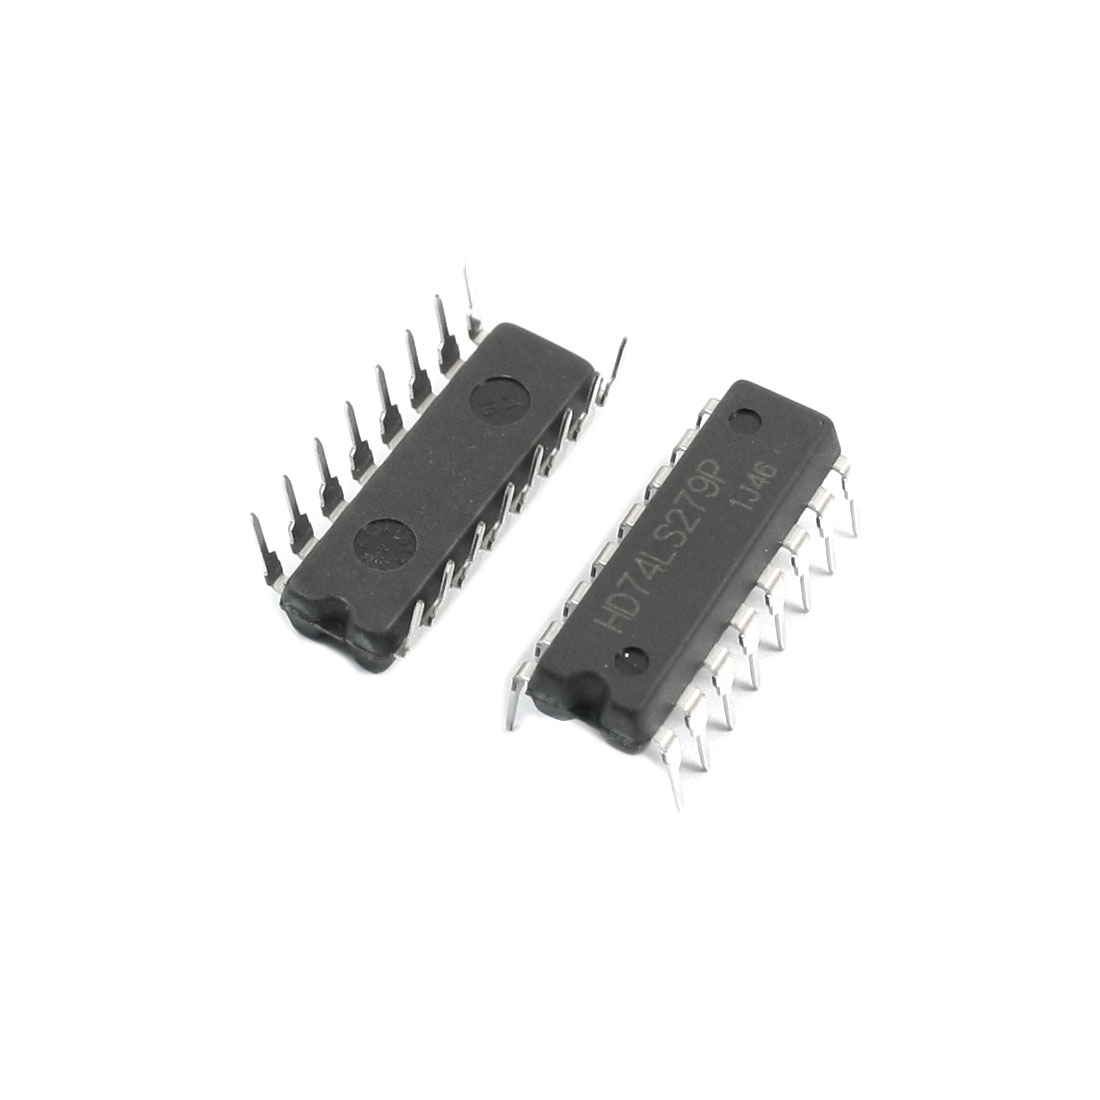 2Pcs 74LS279 2.54mm 16-Pin DIP16 Dual Row DIP Through Hole Quadruple Set-Reset Latch IC Chip